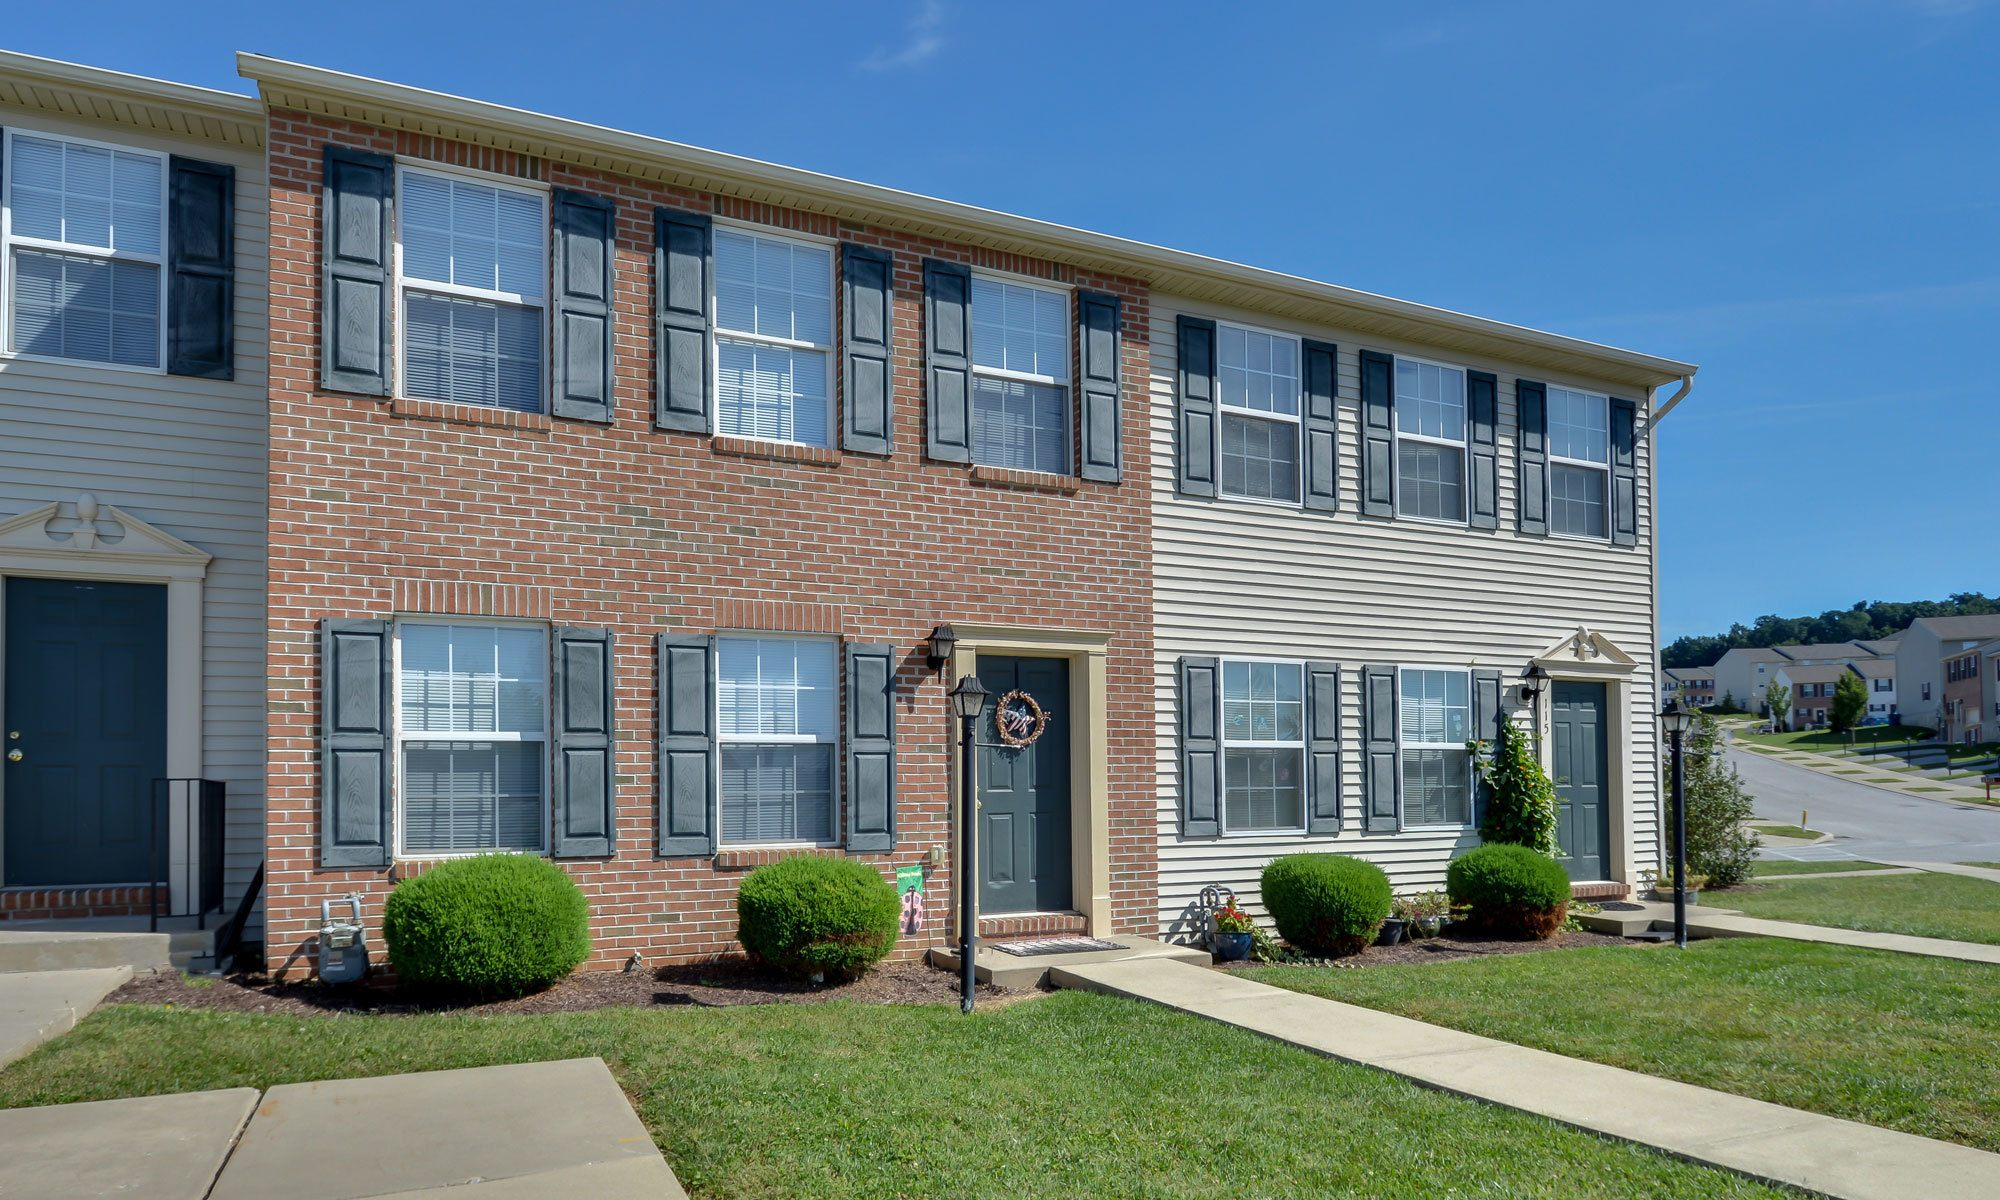 Welcome to Lion's Gate Townhomes in Red Lion, PA